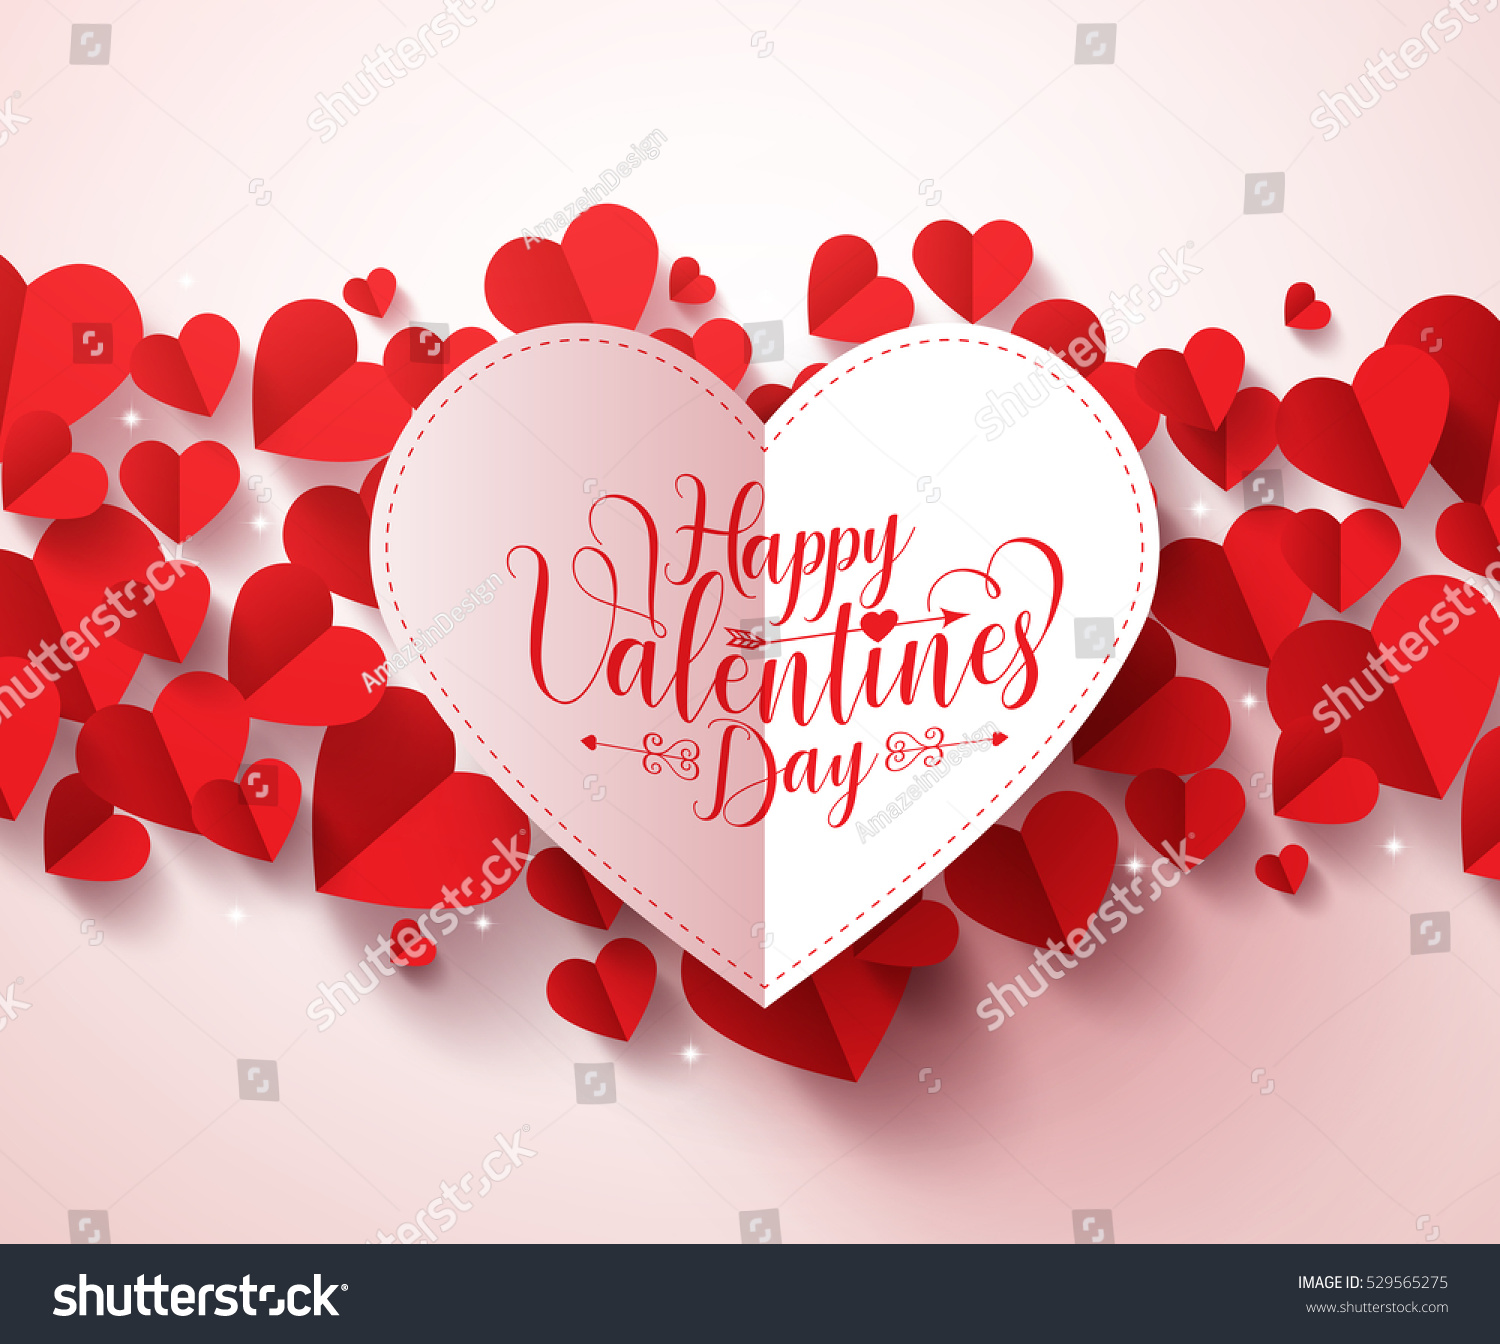 happy valentine s day 2018 love sms cards 3